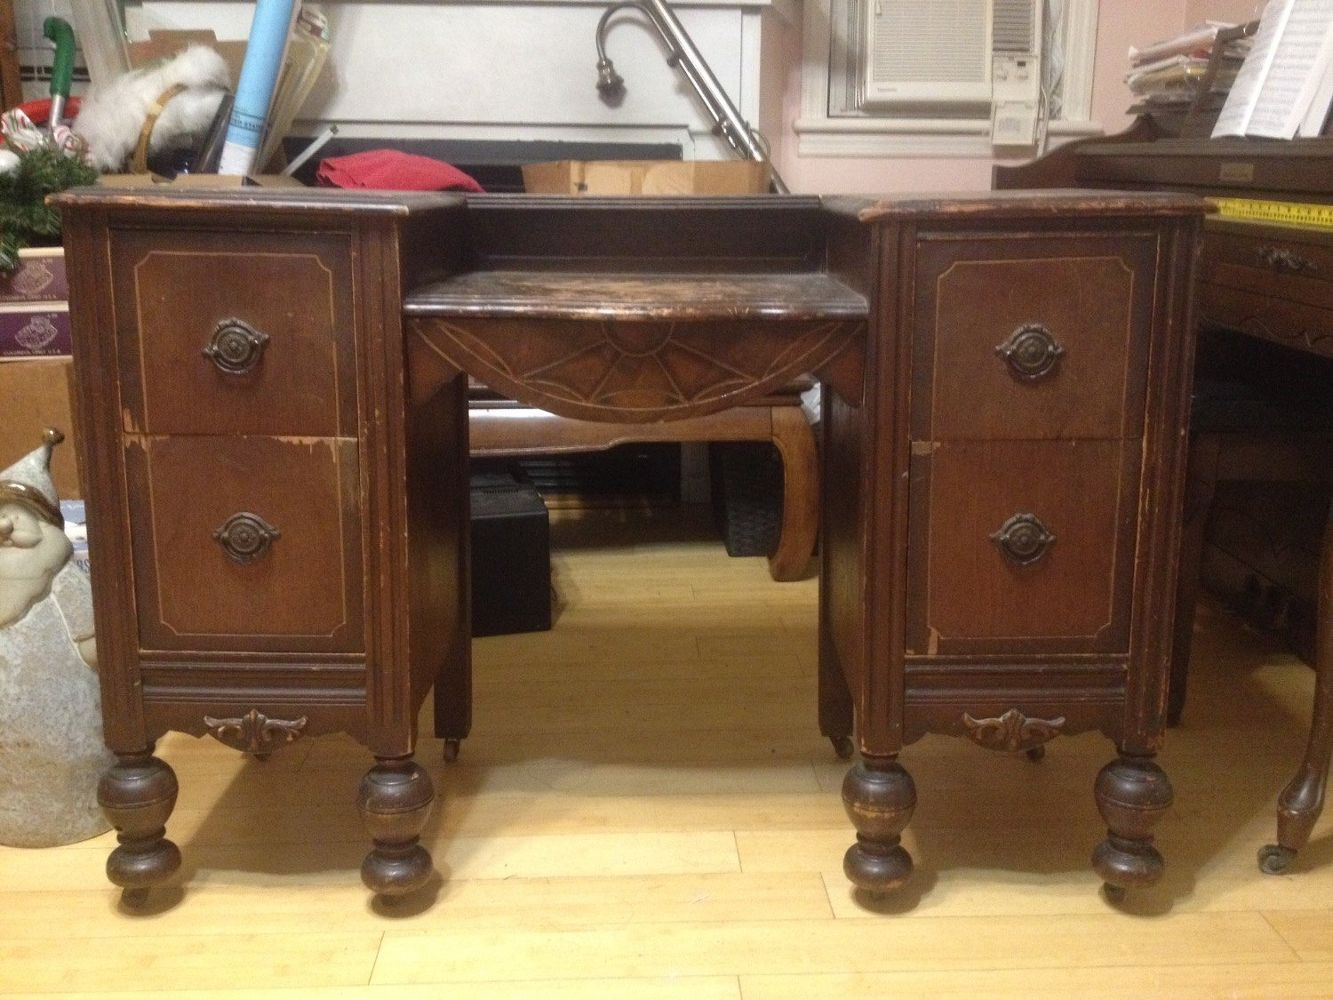 How to age & distress this vanity? Distressed FurnitureWood ...